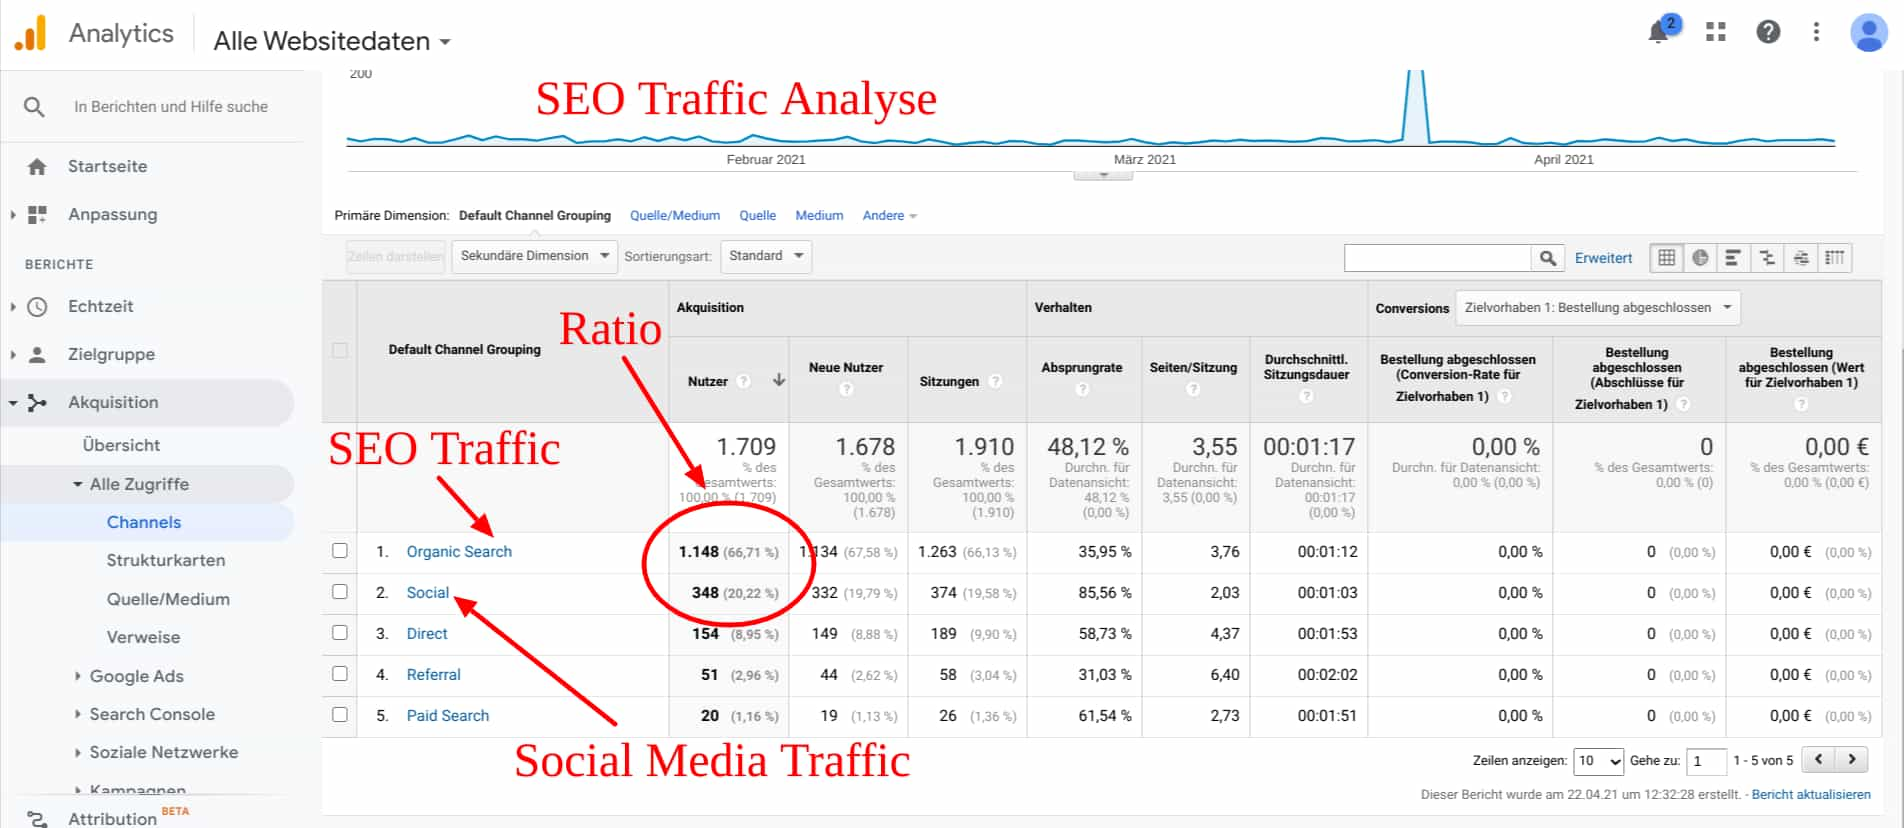 SEO Traffic Analyse in Google Analytics